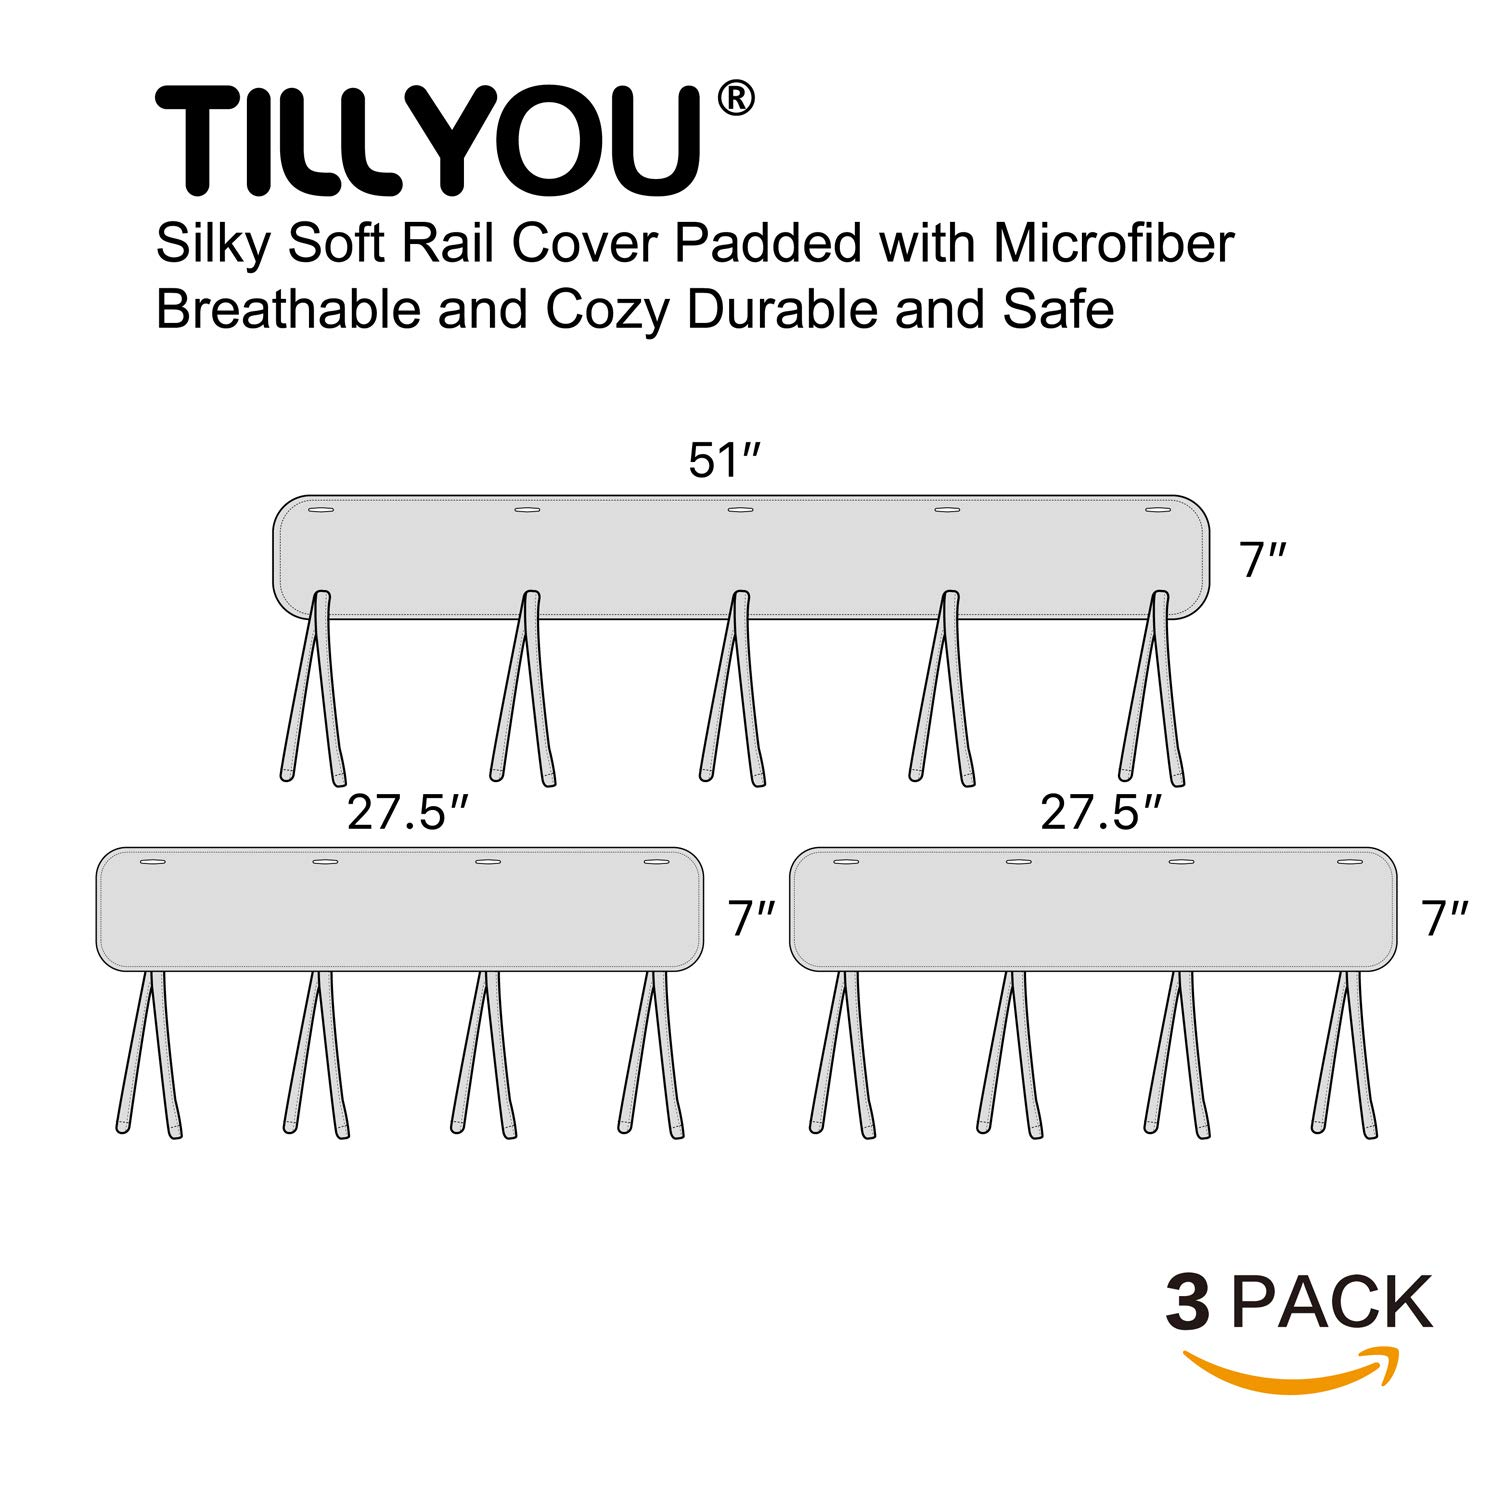 TILLYOU 3-Piece Padded Baby Crib Rail Cover Protector Set from Chewing, Safe Teething Guard Wrap for Standard Cribs, 100% Silky Soft Microfiber Polyester, Fits Side and Front Rails, Pale Gray by TILLYOU (Image #7)